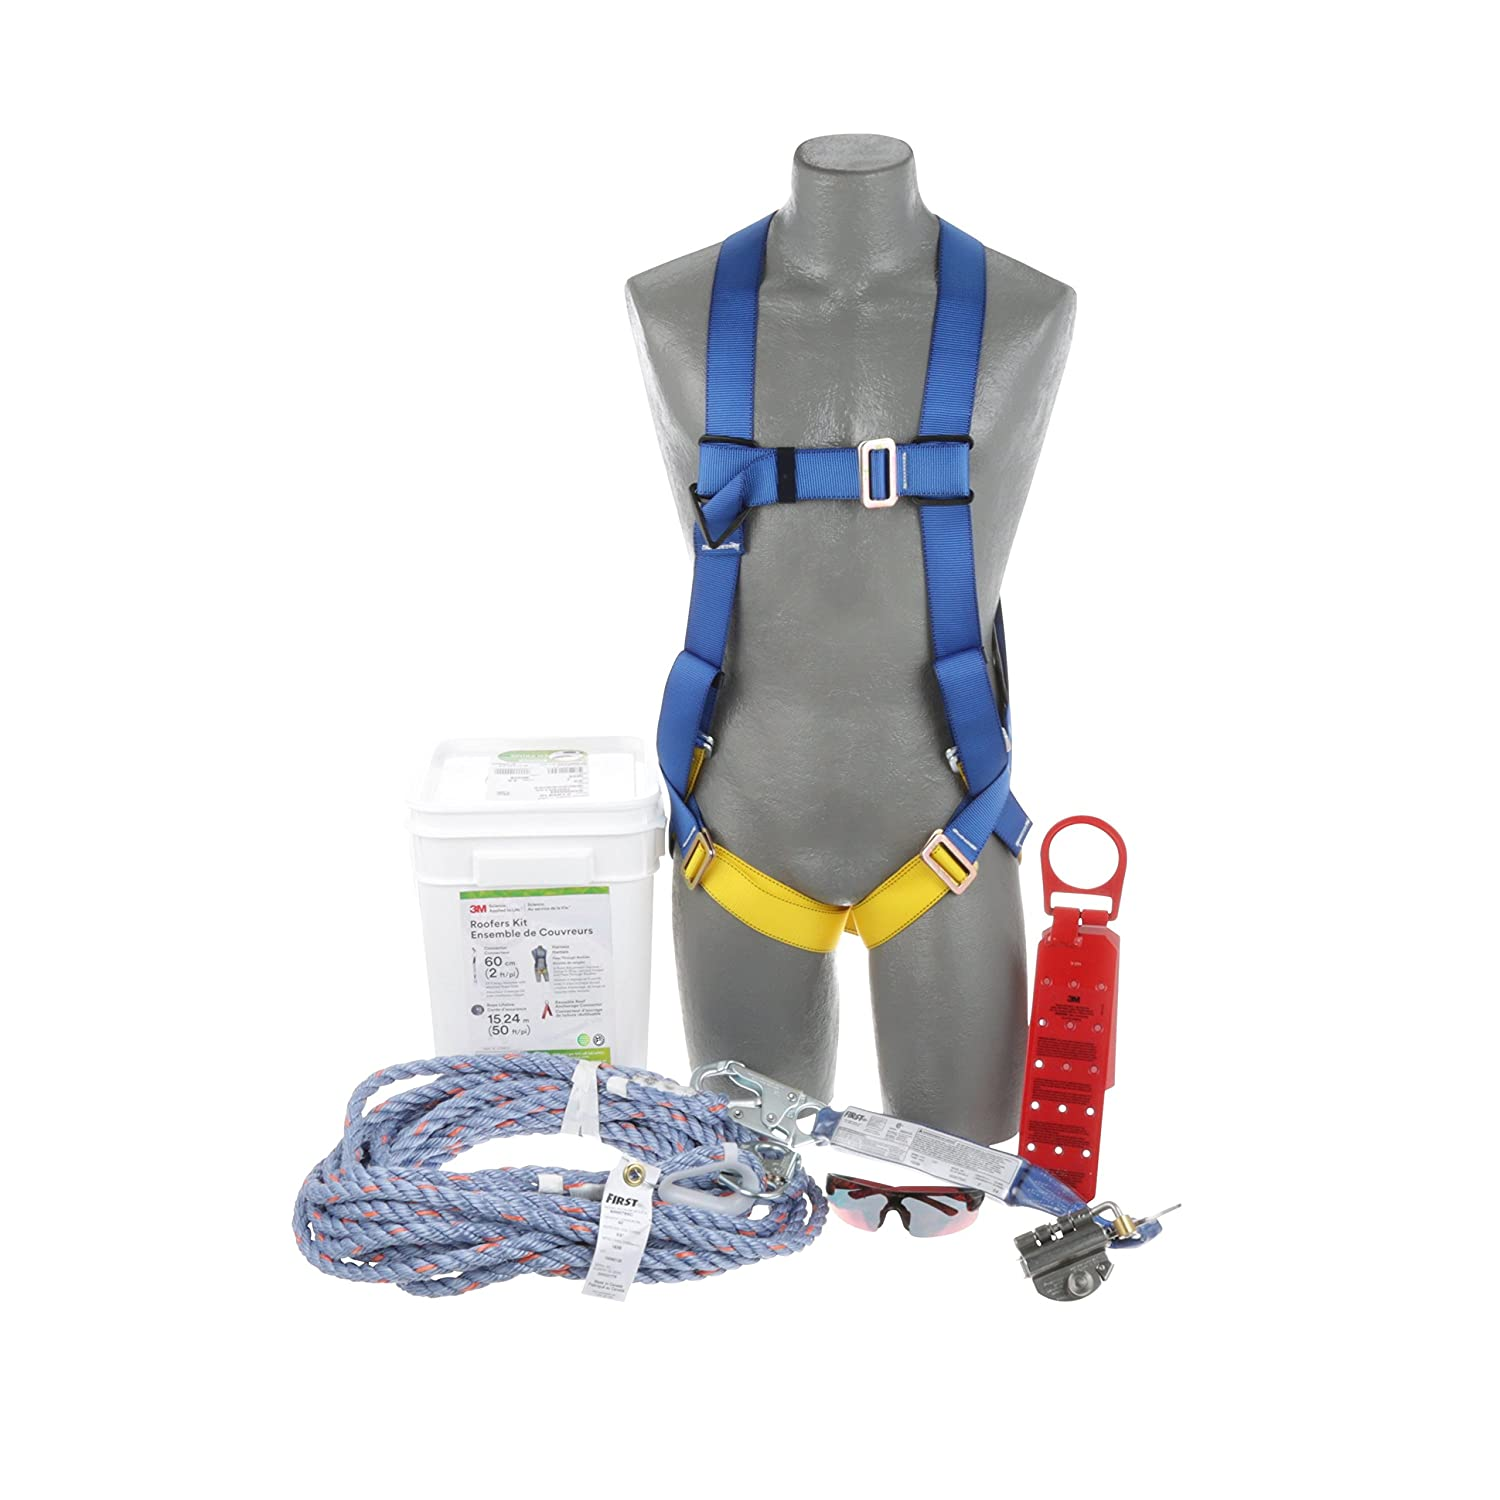 RoofersKitW/PassThruHarness50ftRope